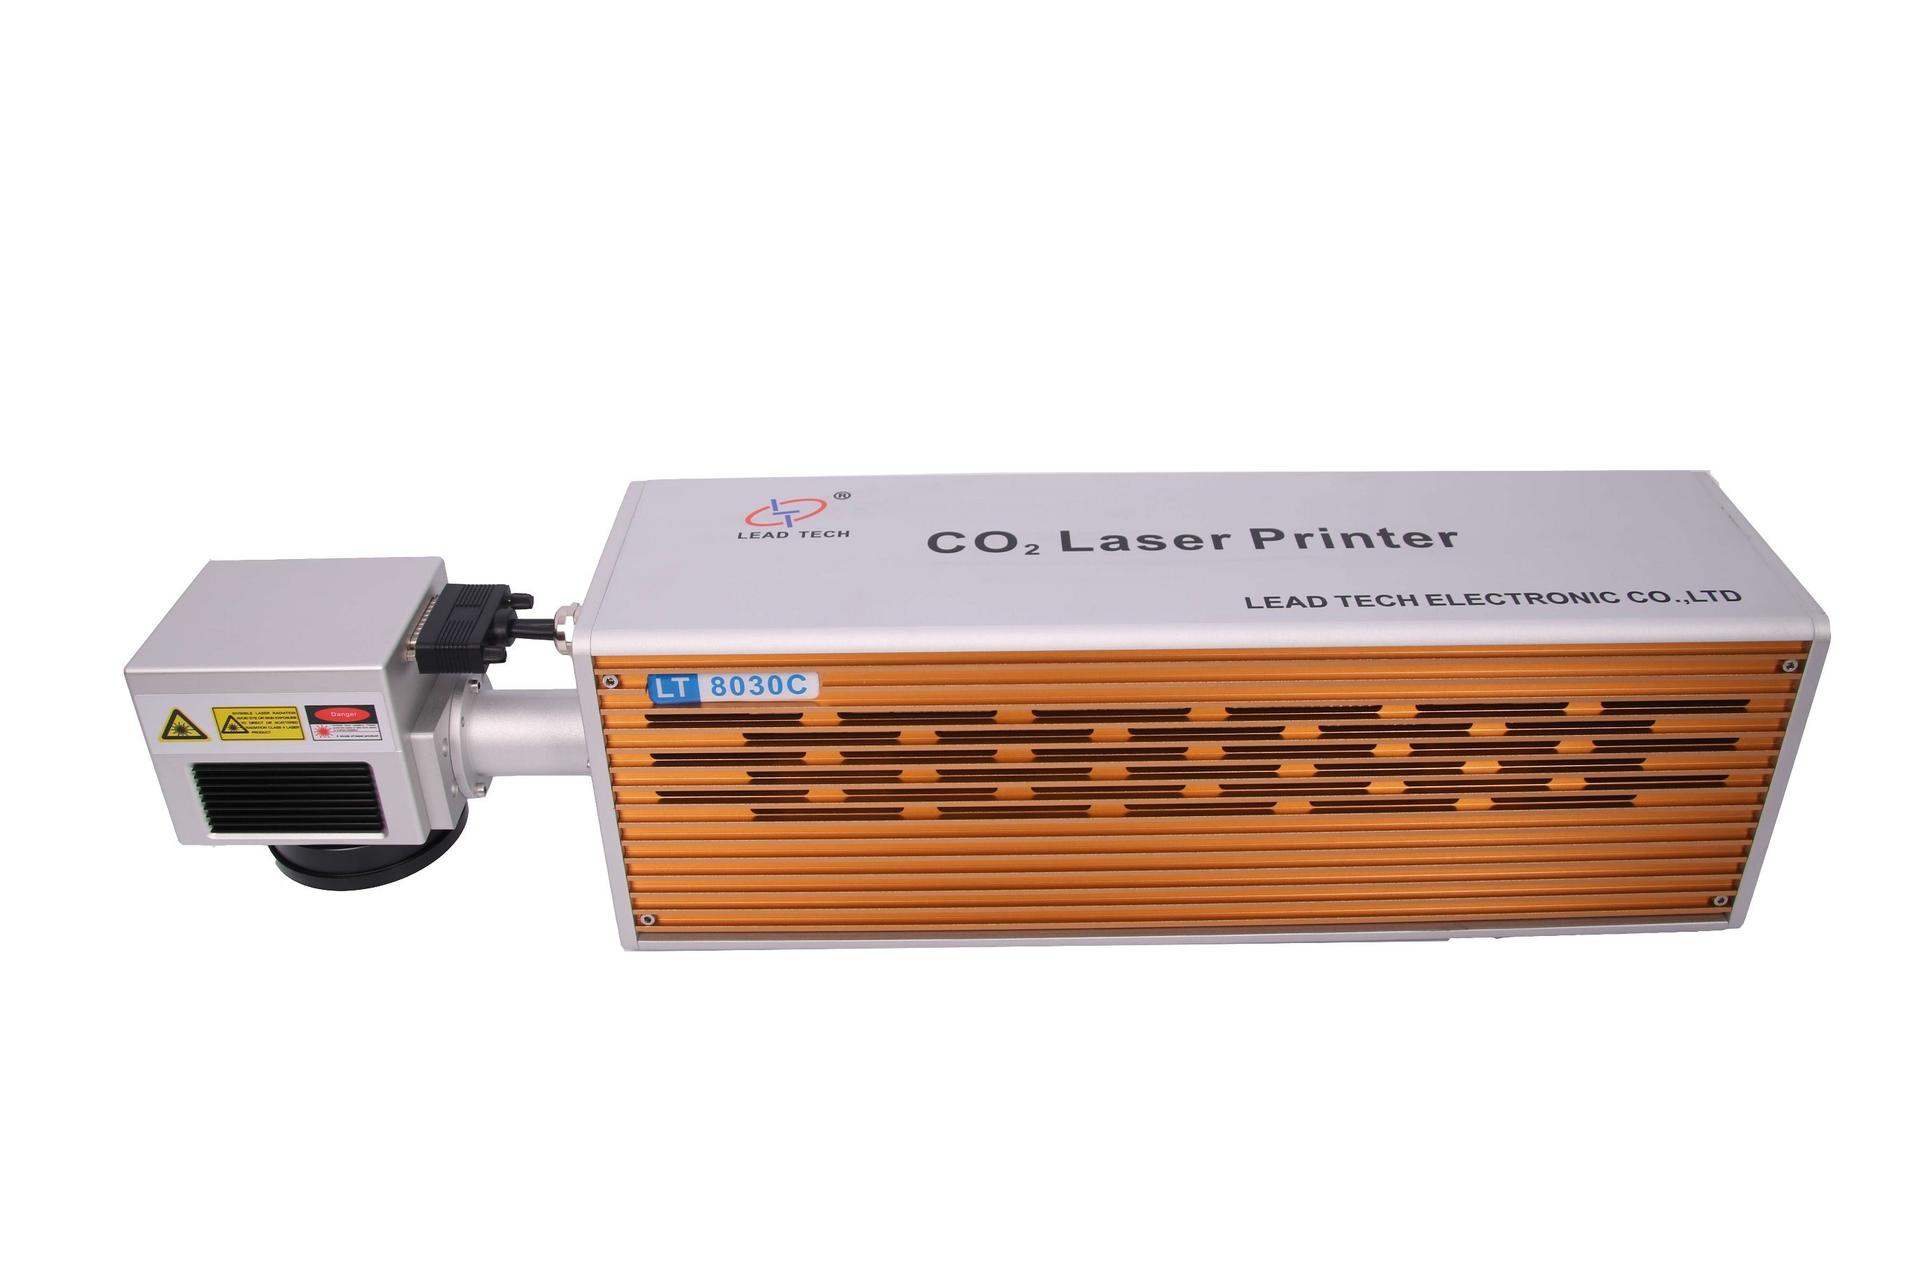 Lt8020c/Lt8030c CO2 High Precision Economic Cable Laser Printer